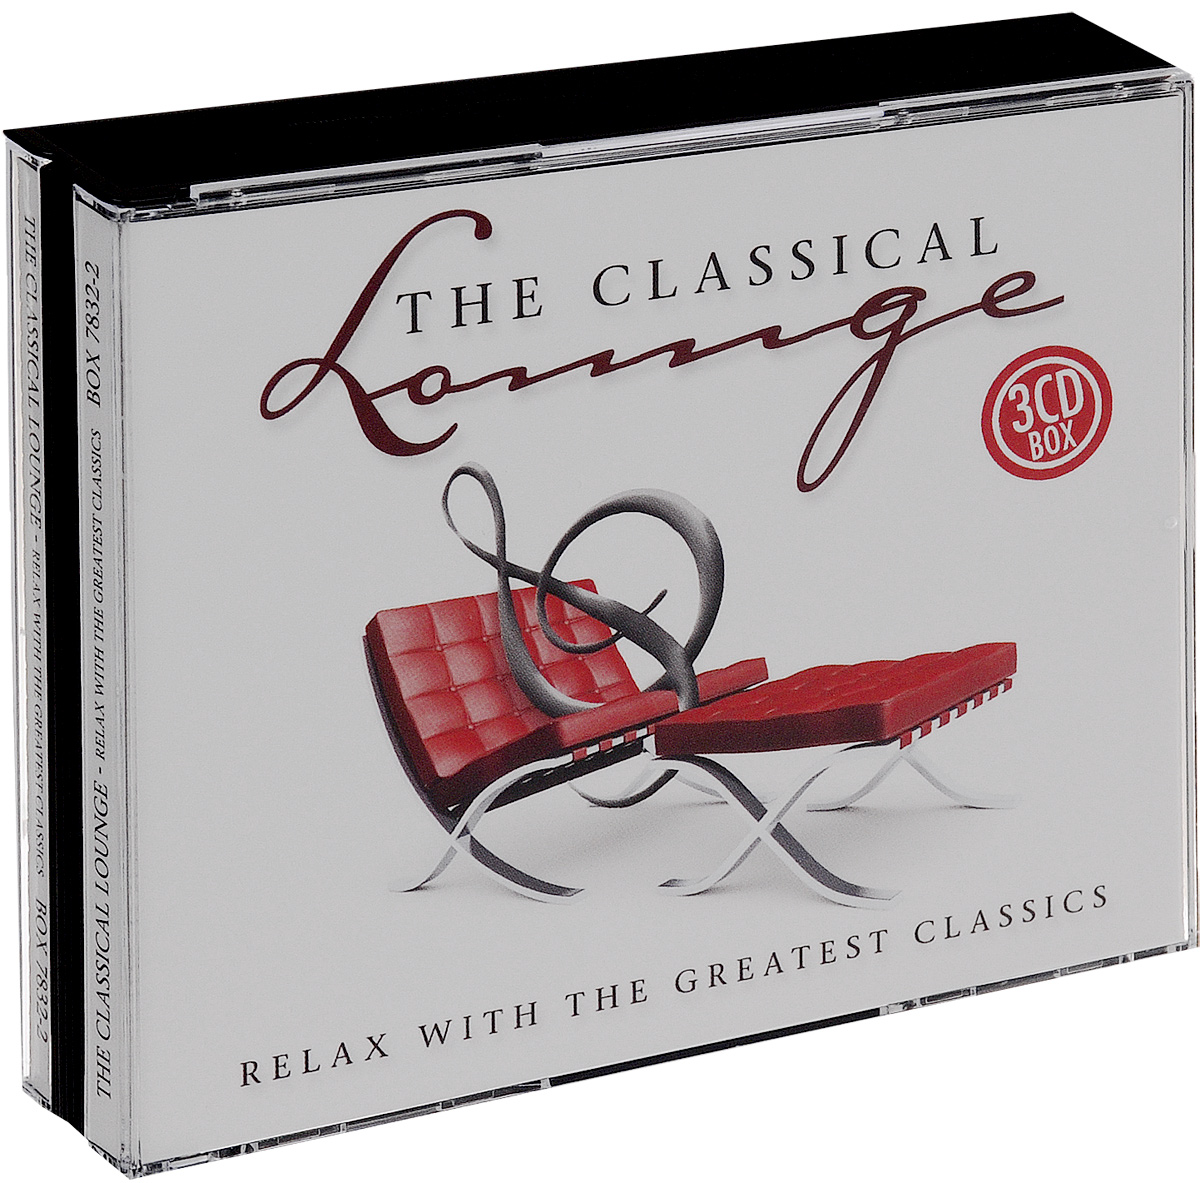 The Classical Lounge. Relax With Greatest Classics (3 CD) вытяжка maunfeld derby 50 бежевый